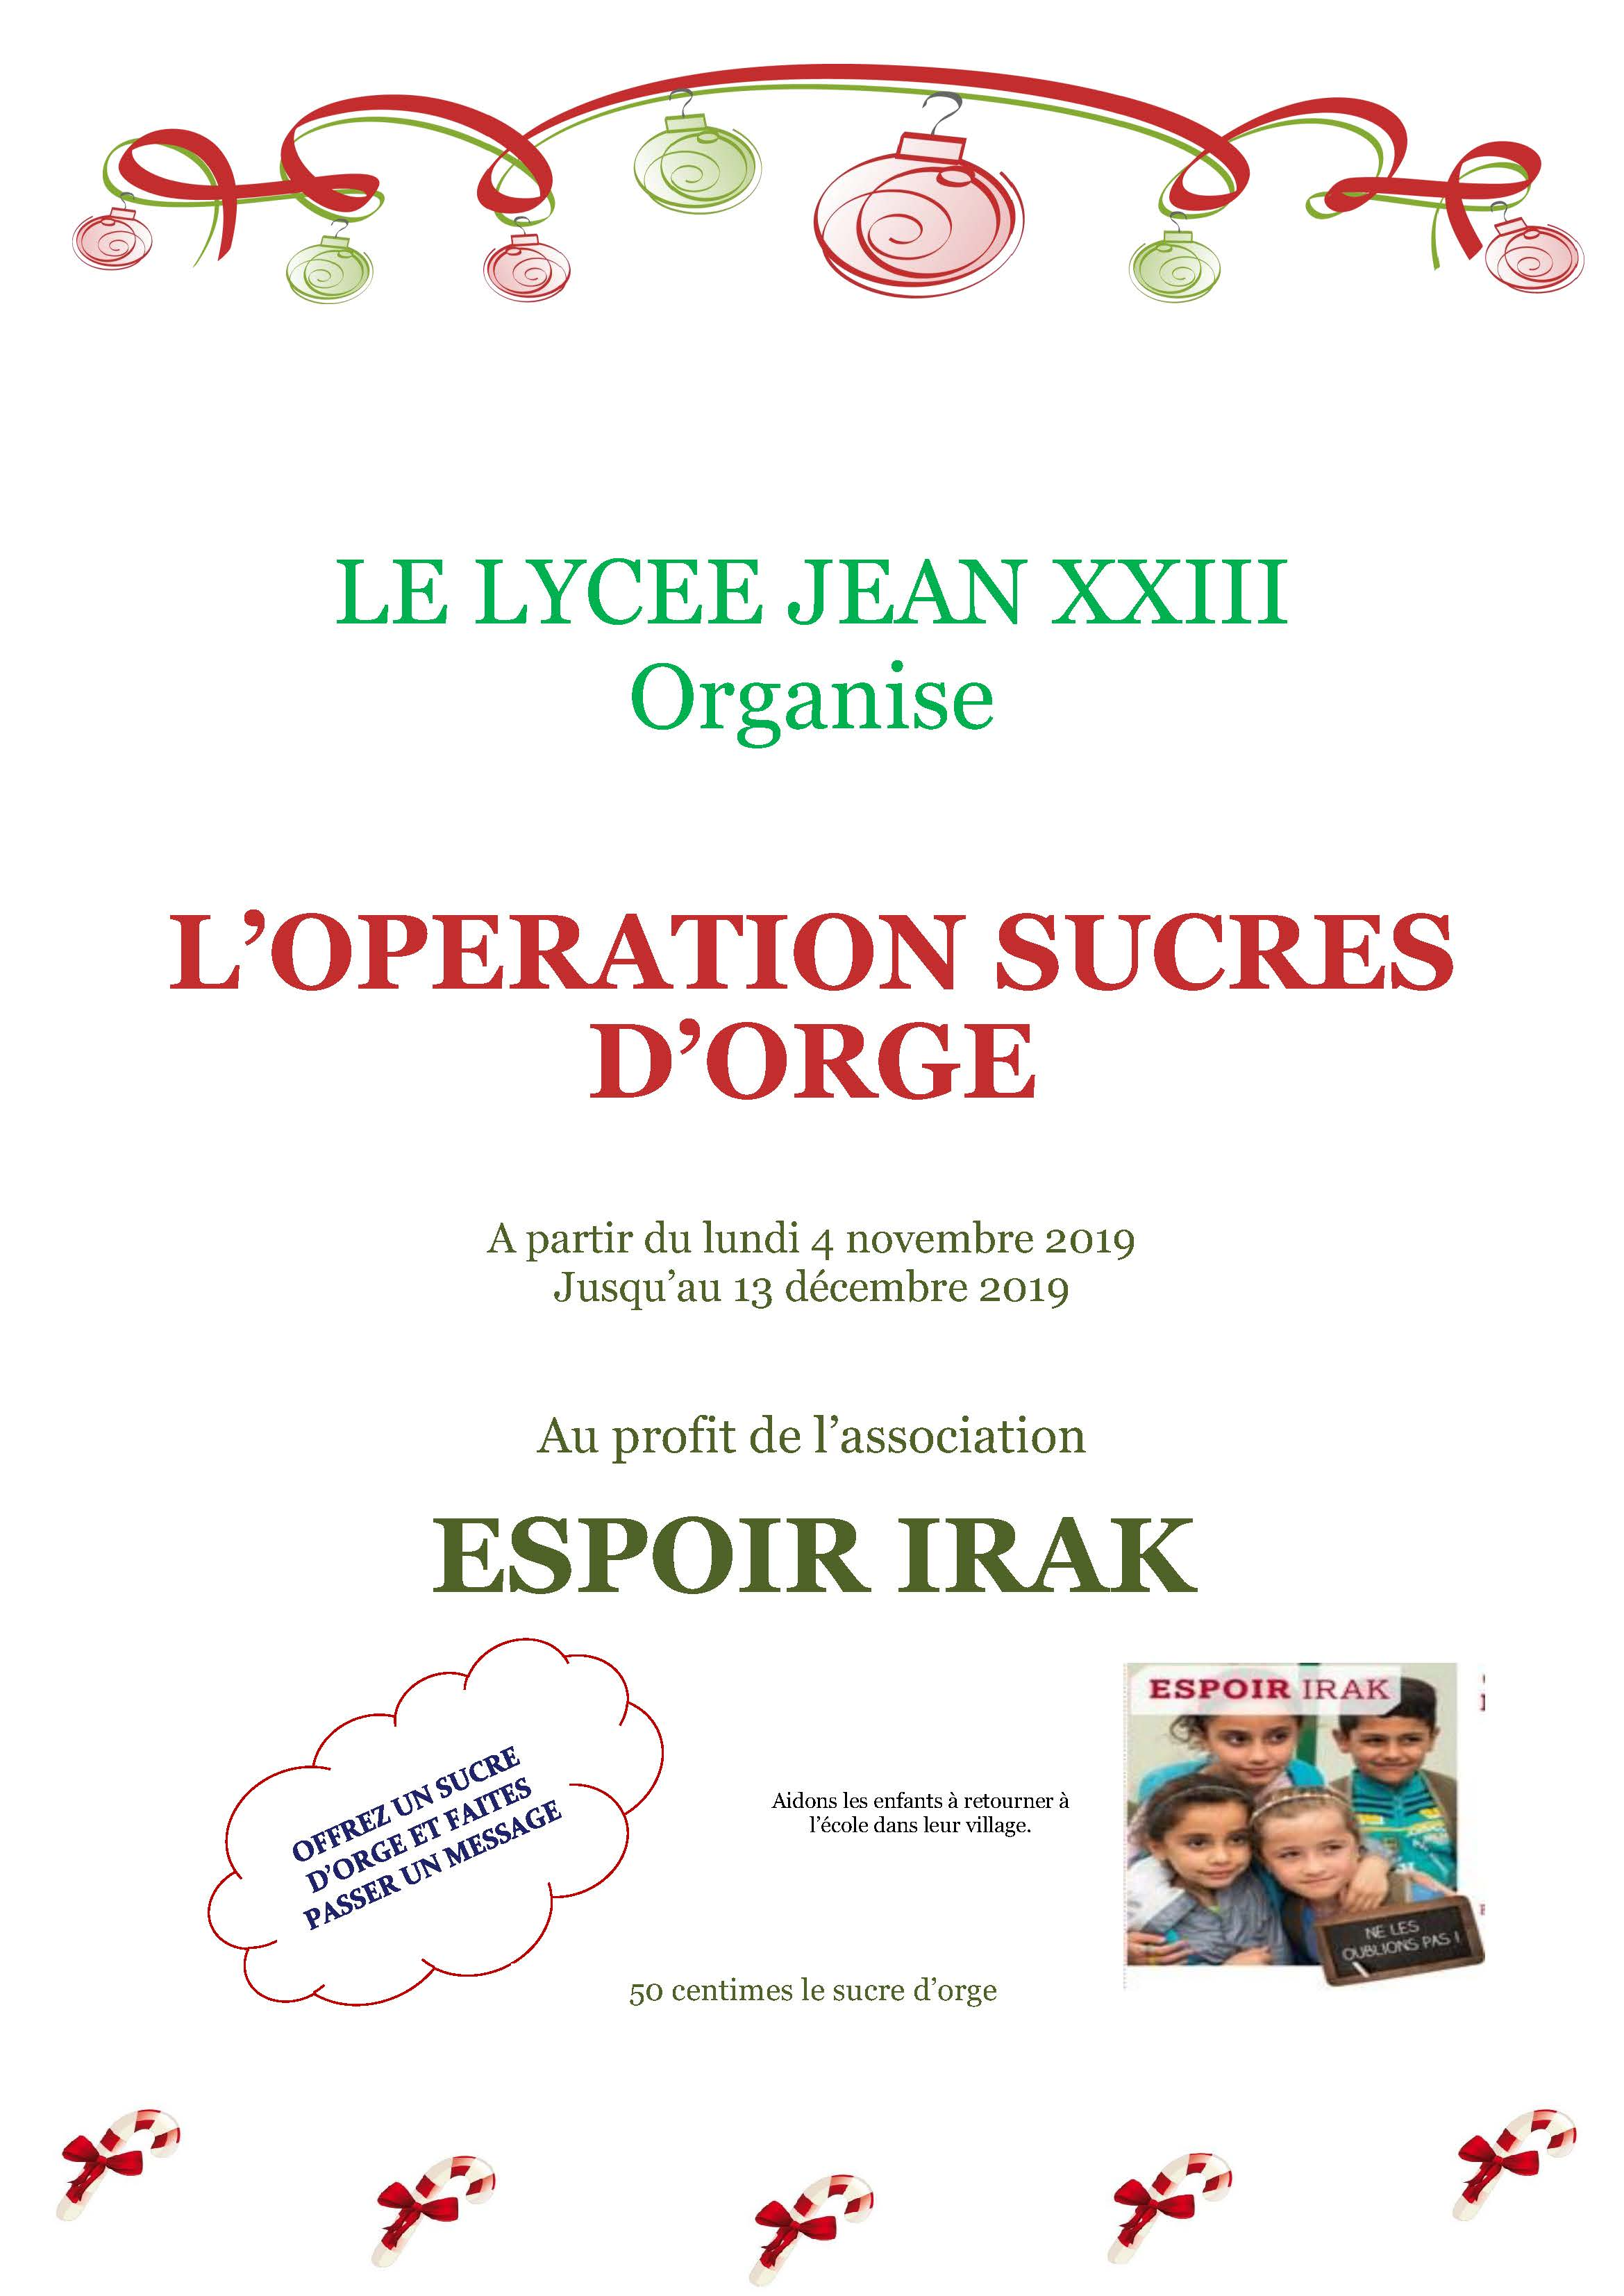 L'OPERATION SUCRES D'ORGE